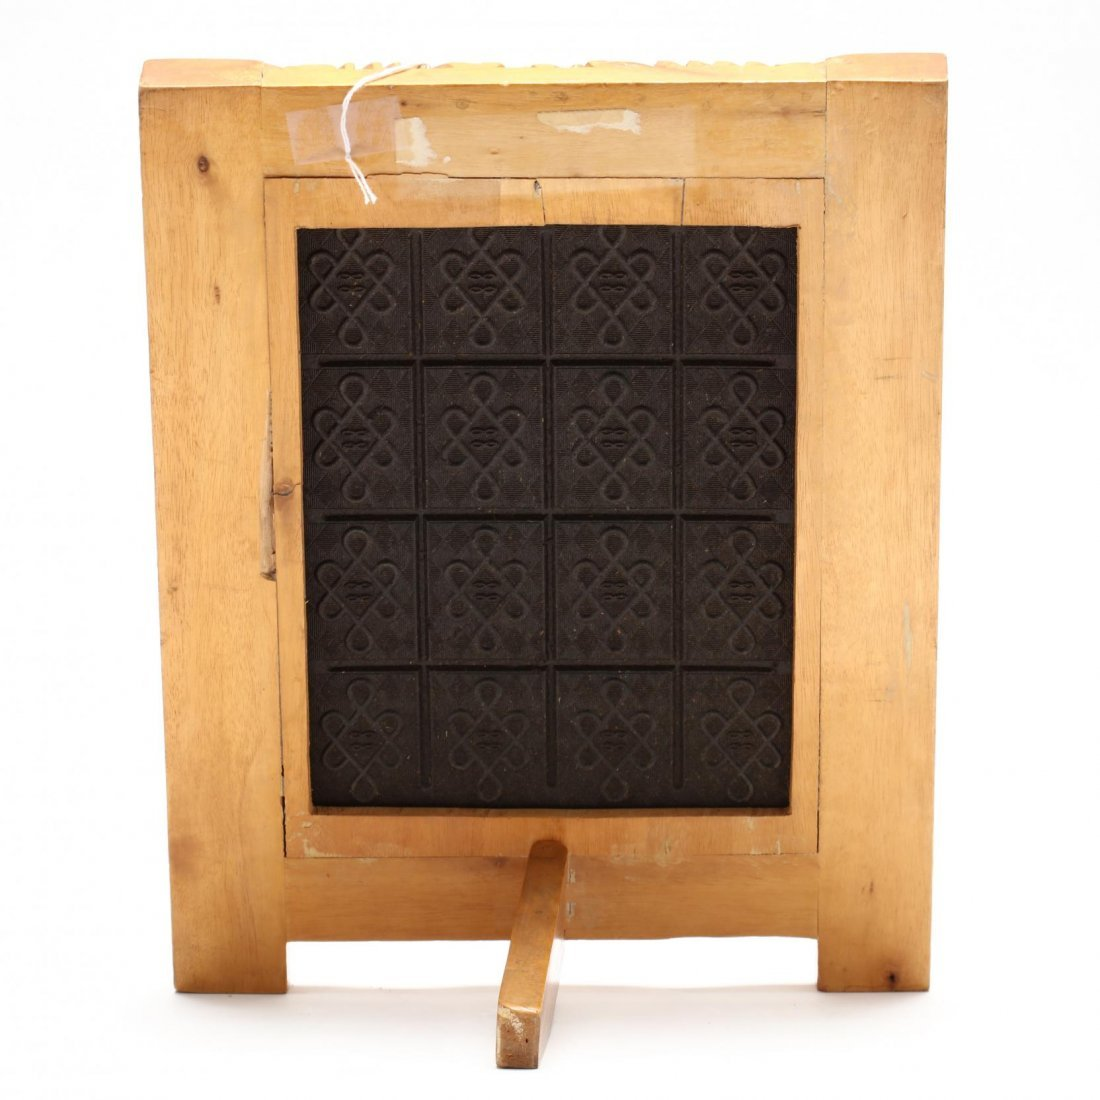 Chinese Framed Hubei (Black Tea) Brick - 3